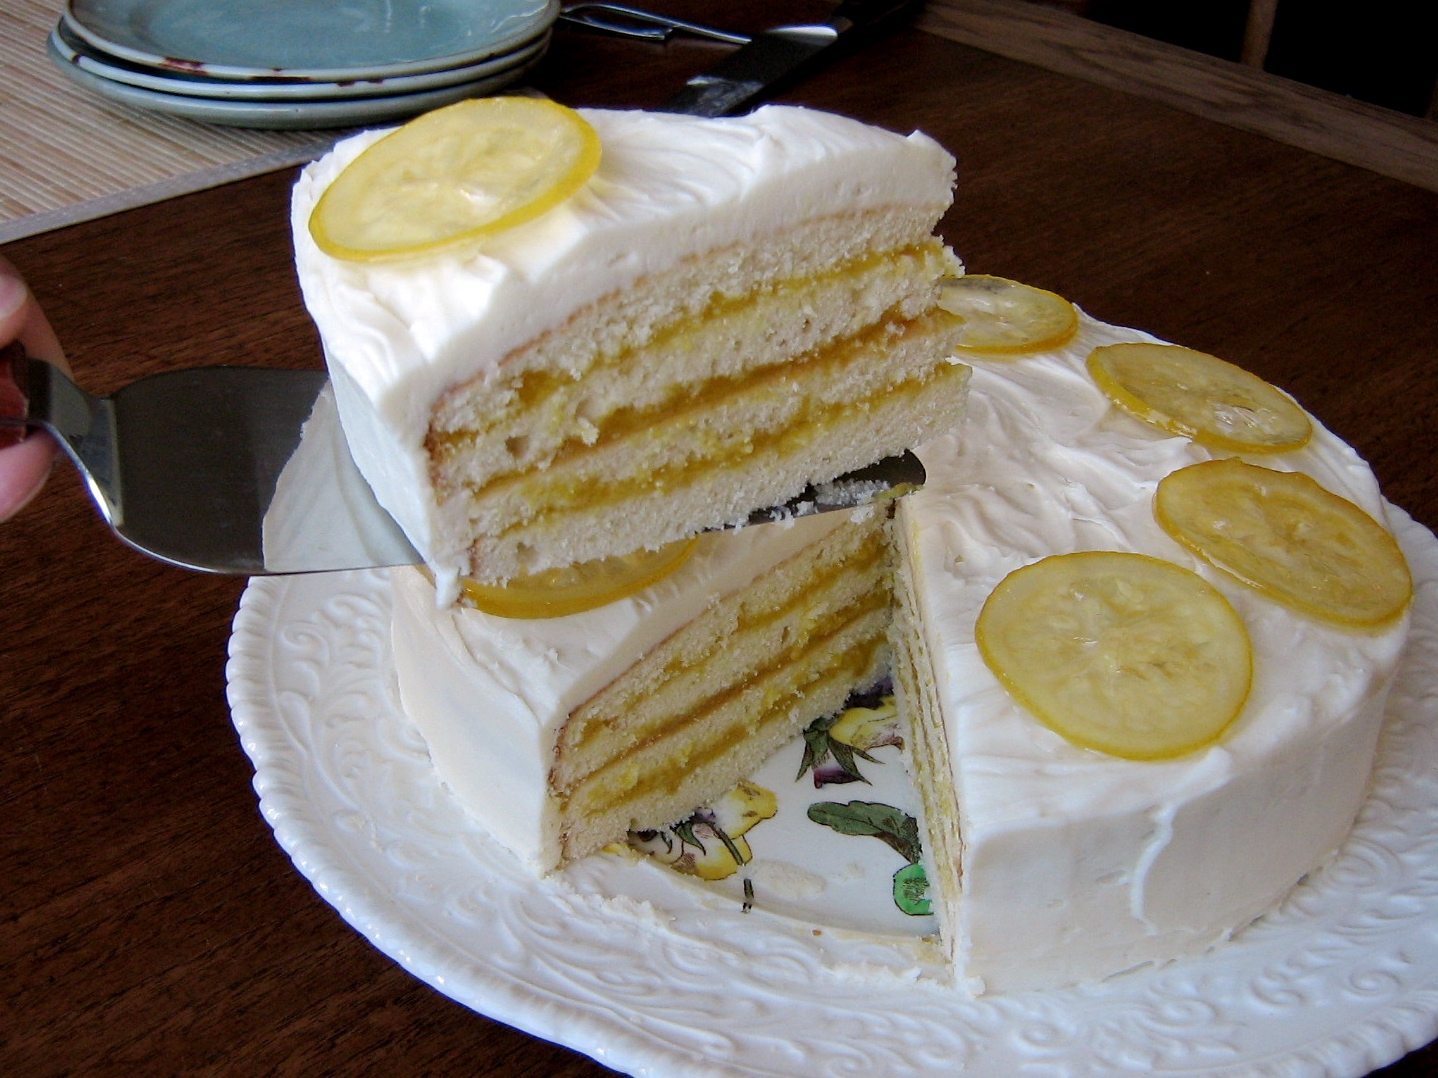 Lemon Tastic Birthday Cake With Lemon Curd Filling And Candied